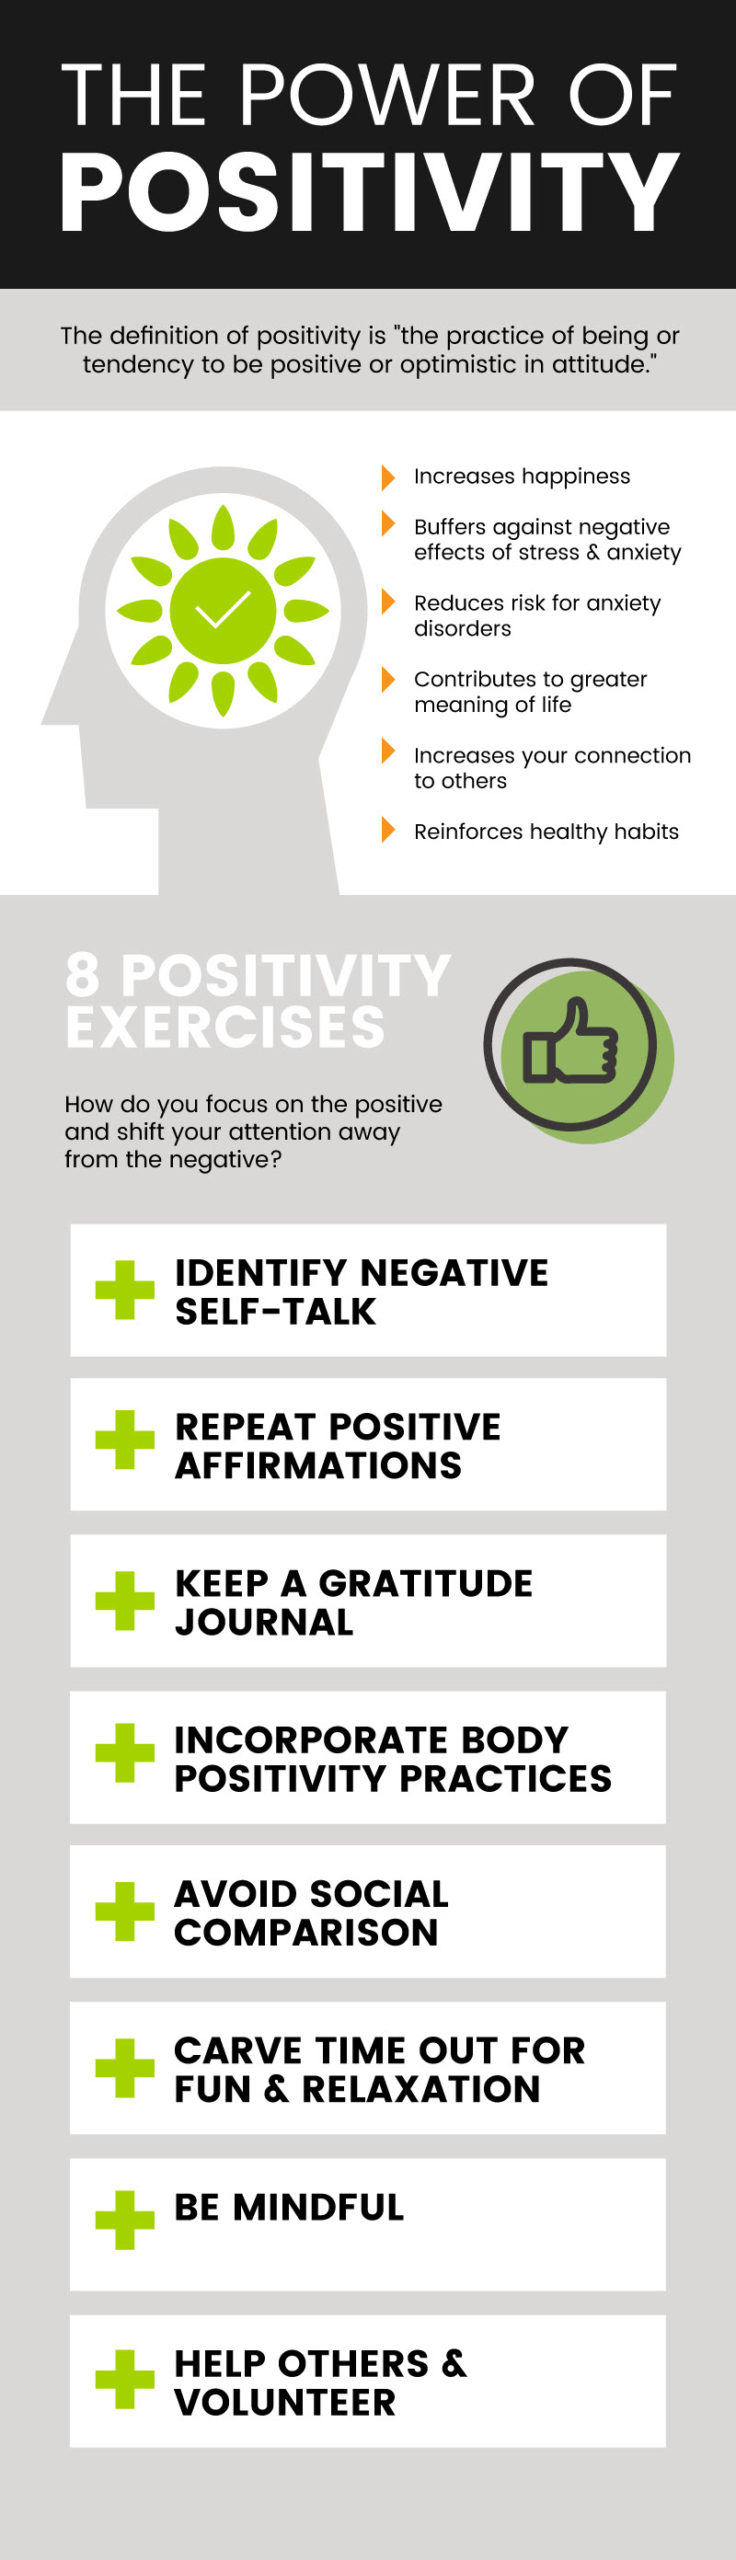 Benefits of positivity + positivity exercises - MKexpress.net